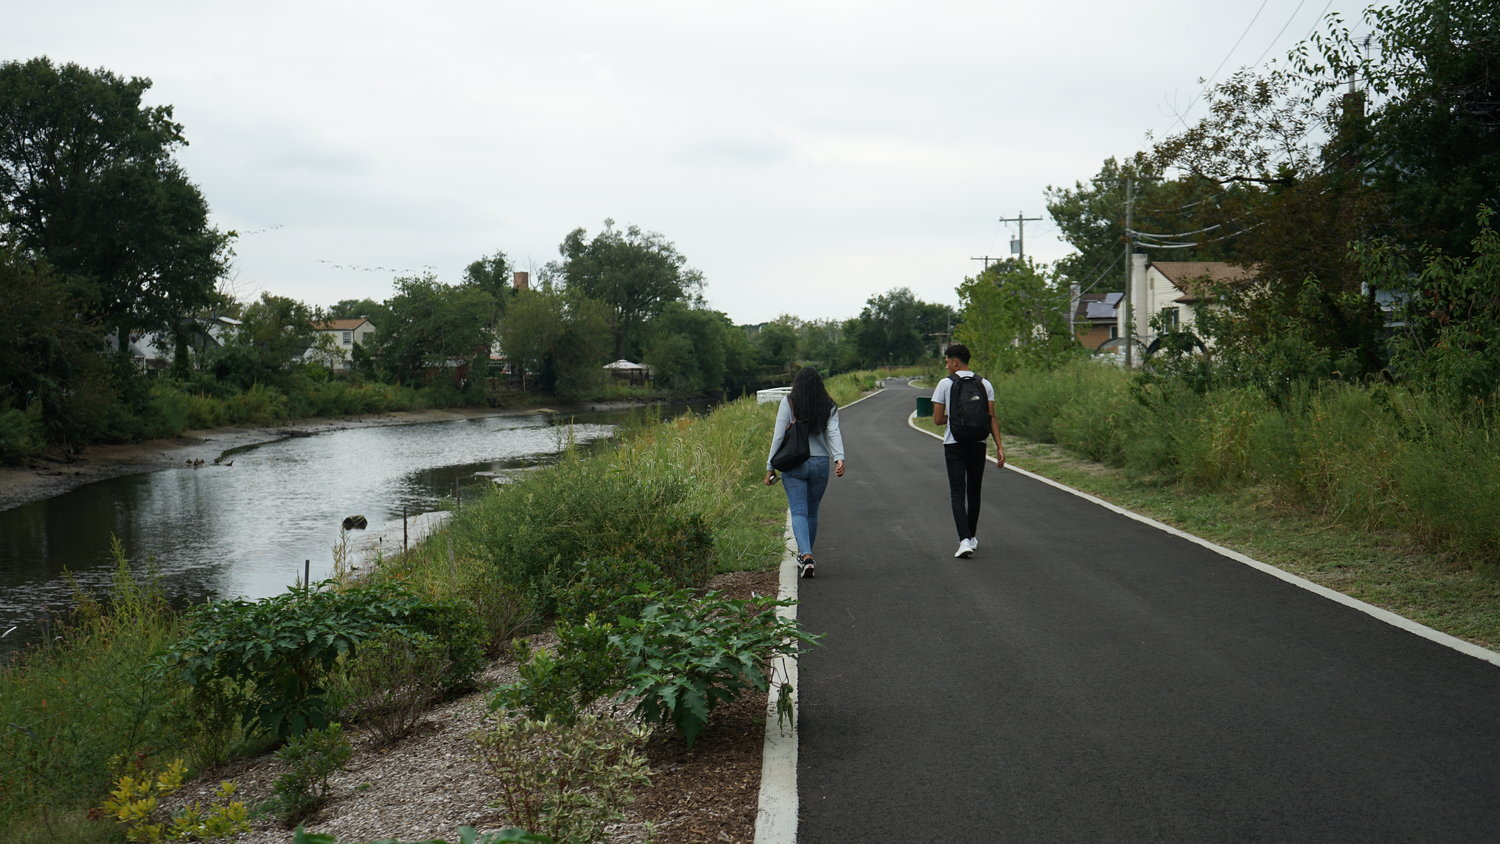 Teenagers walked the Town of Hempstead's new pathway park in South Valley Stream. In addition to providing a scenic walkway, it is also intended to prevent flooding in the surrounding areas.